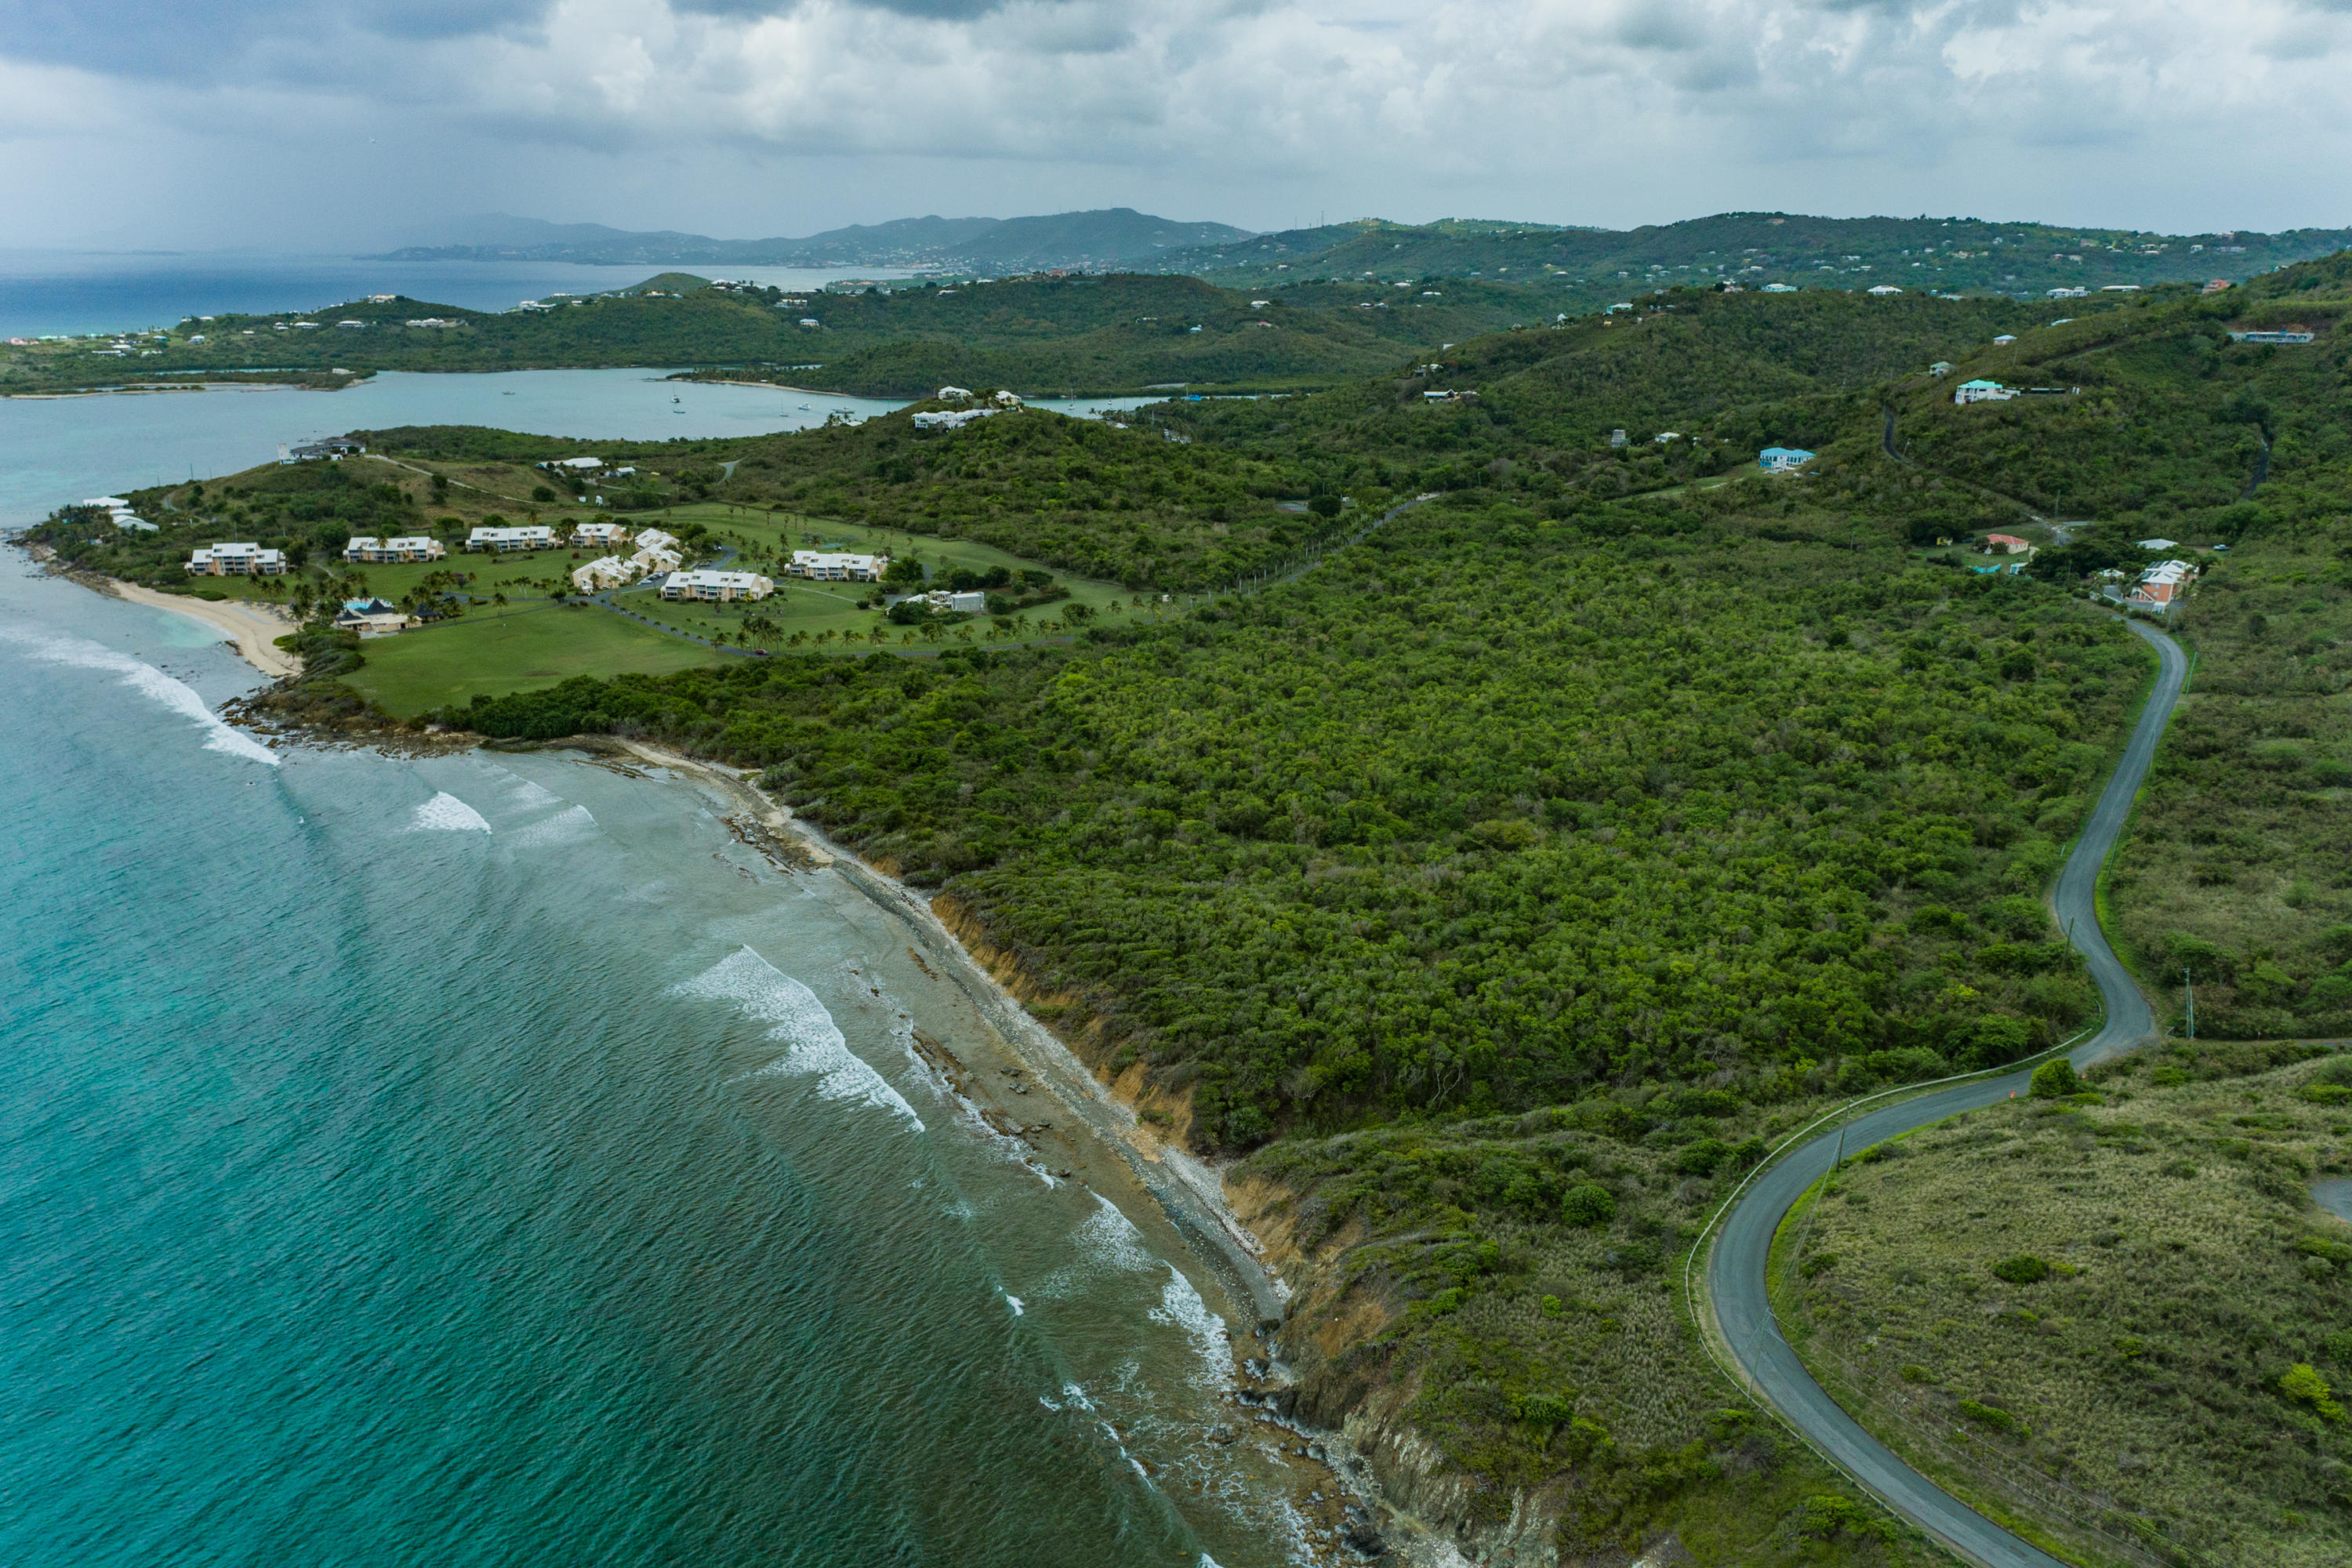 3A Salt River NB, Christiansted, VI, 00820 Photo 1